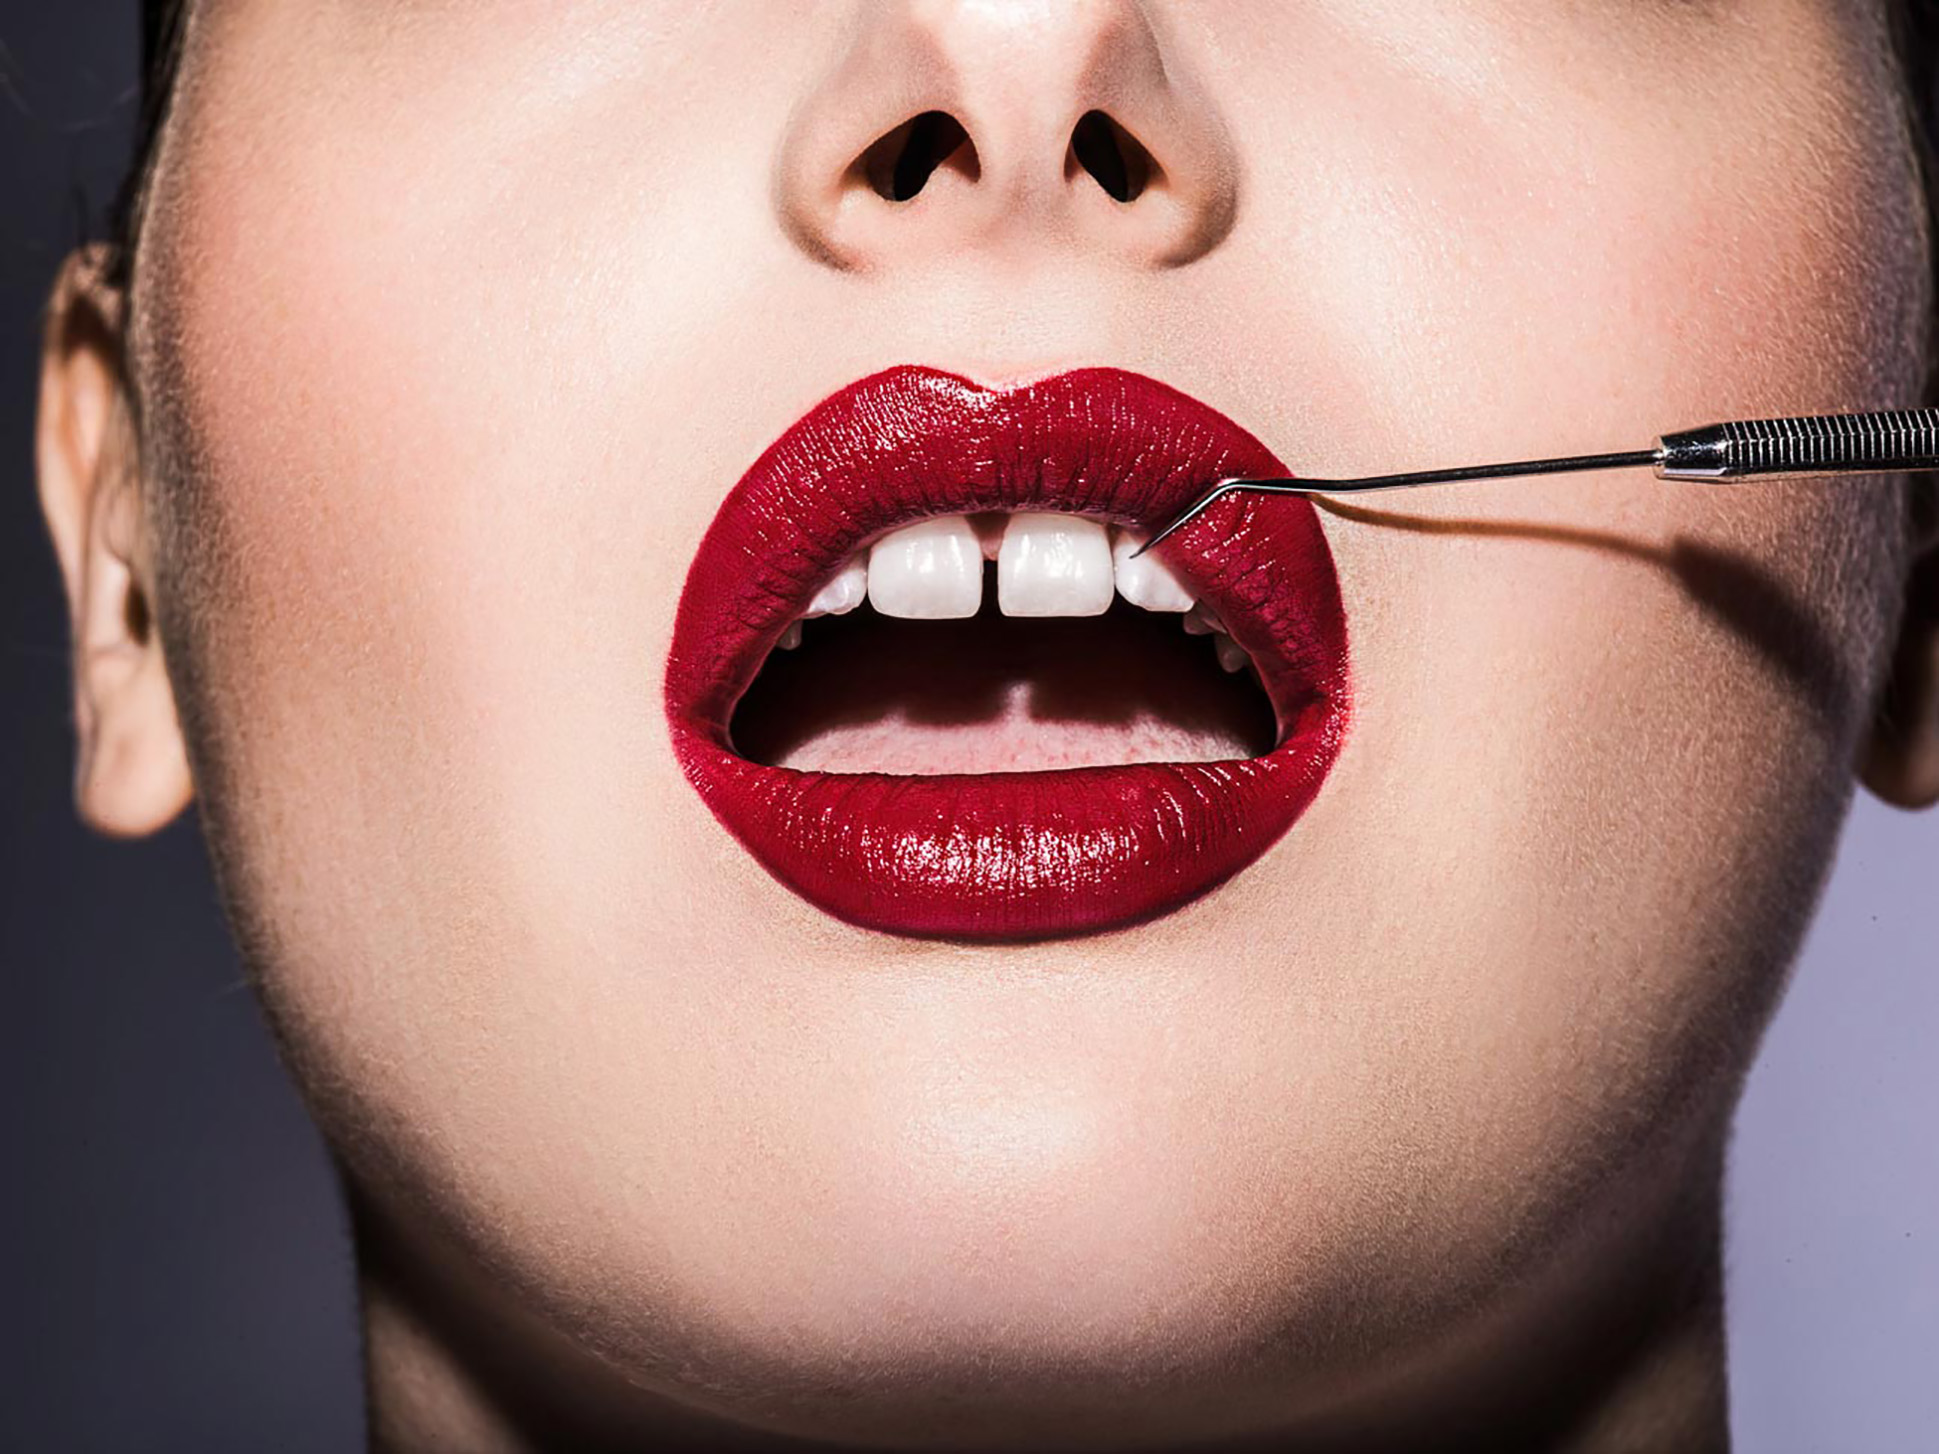 red lips dentist tool white teeth beauty makeup